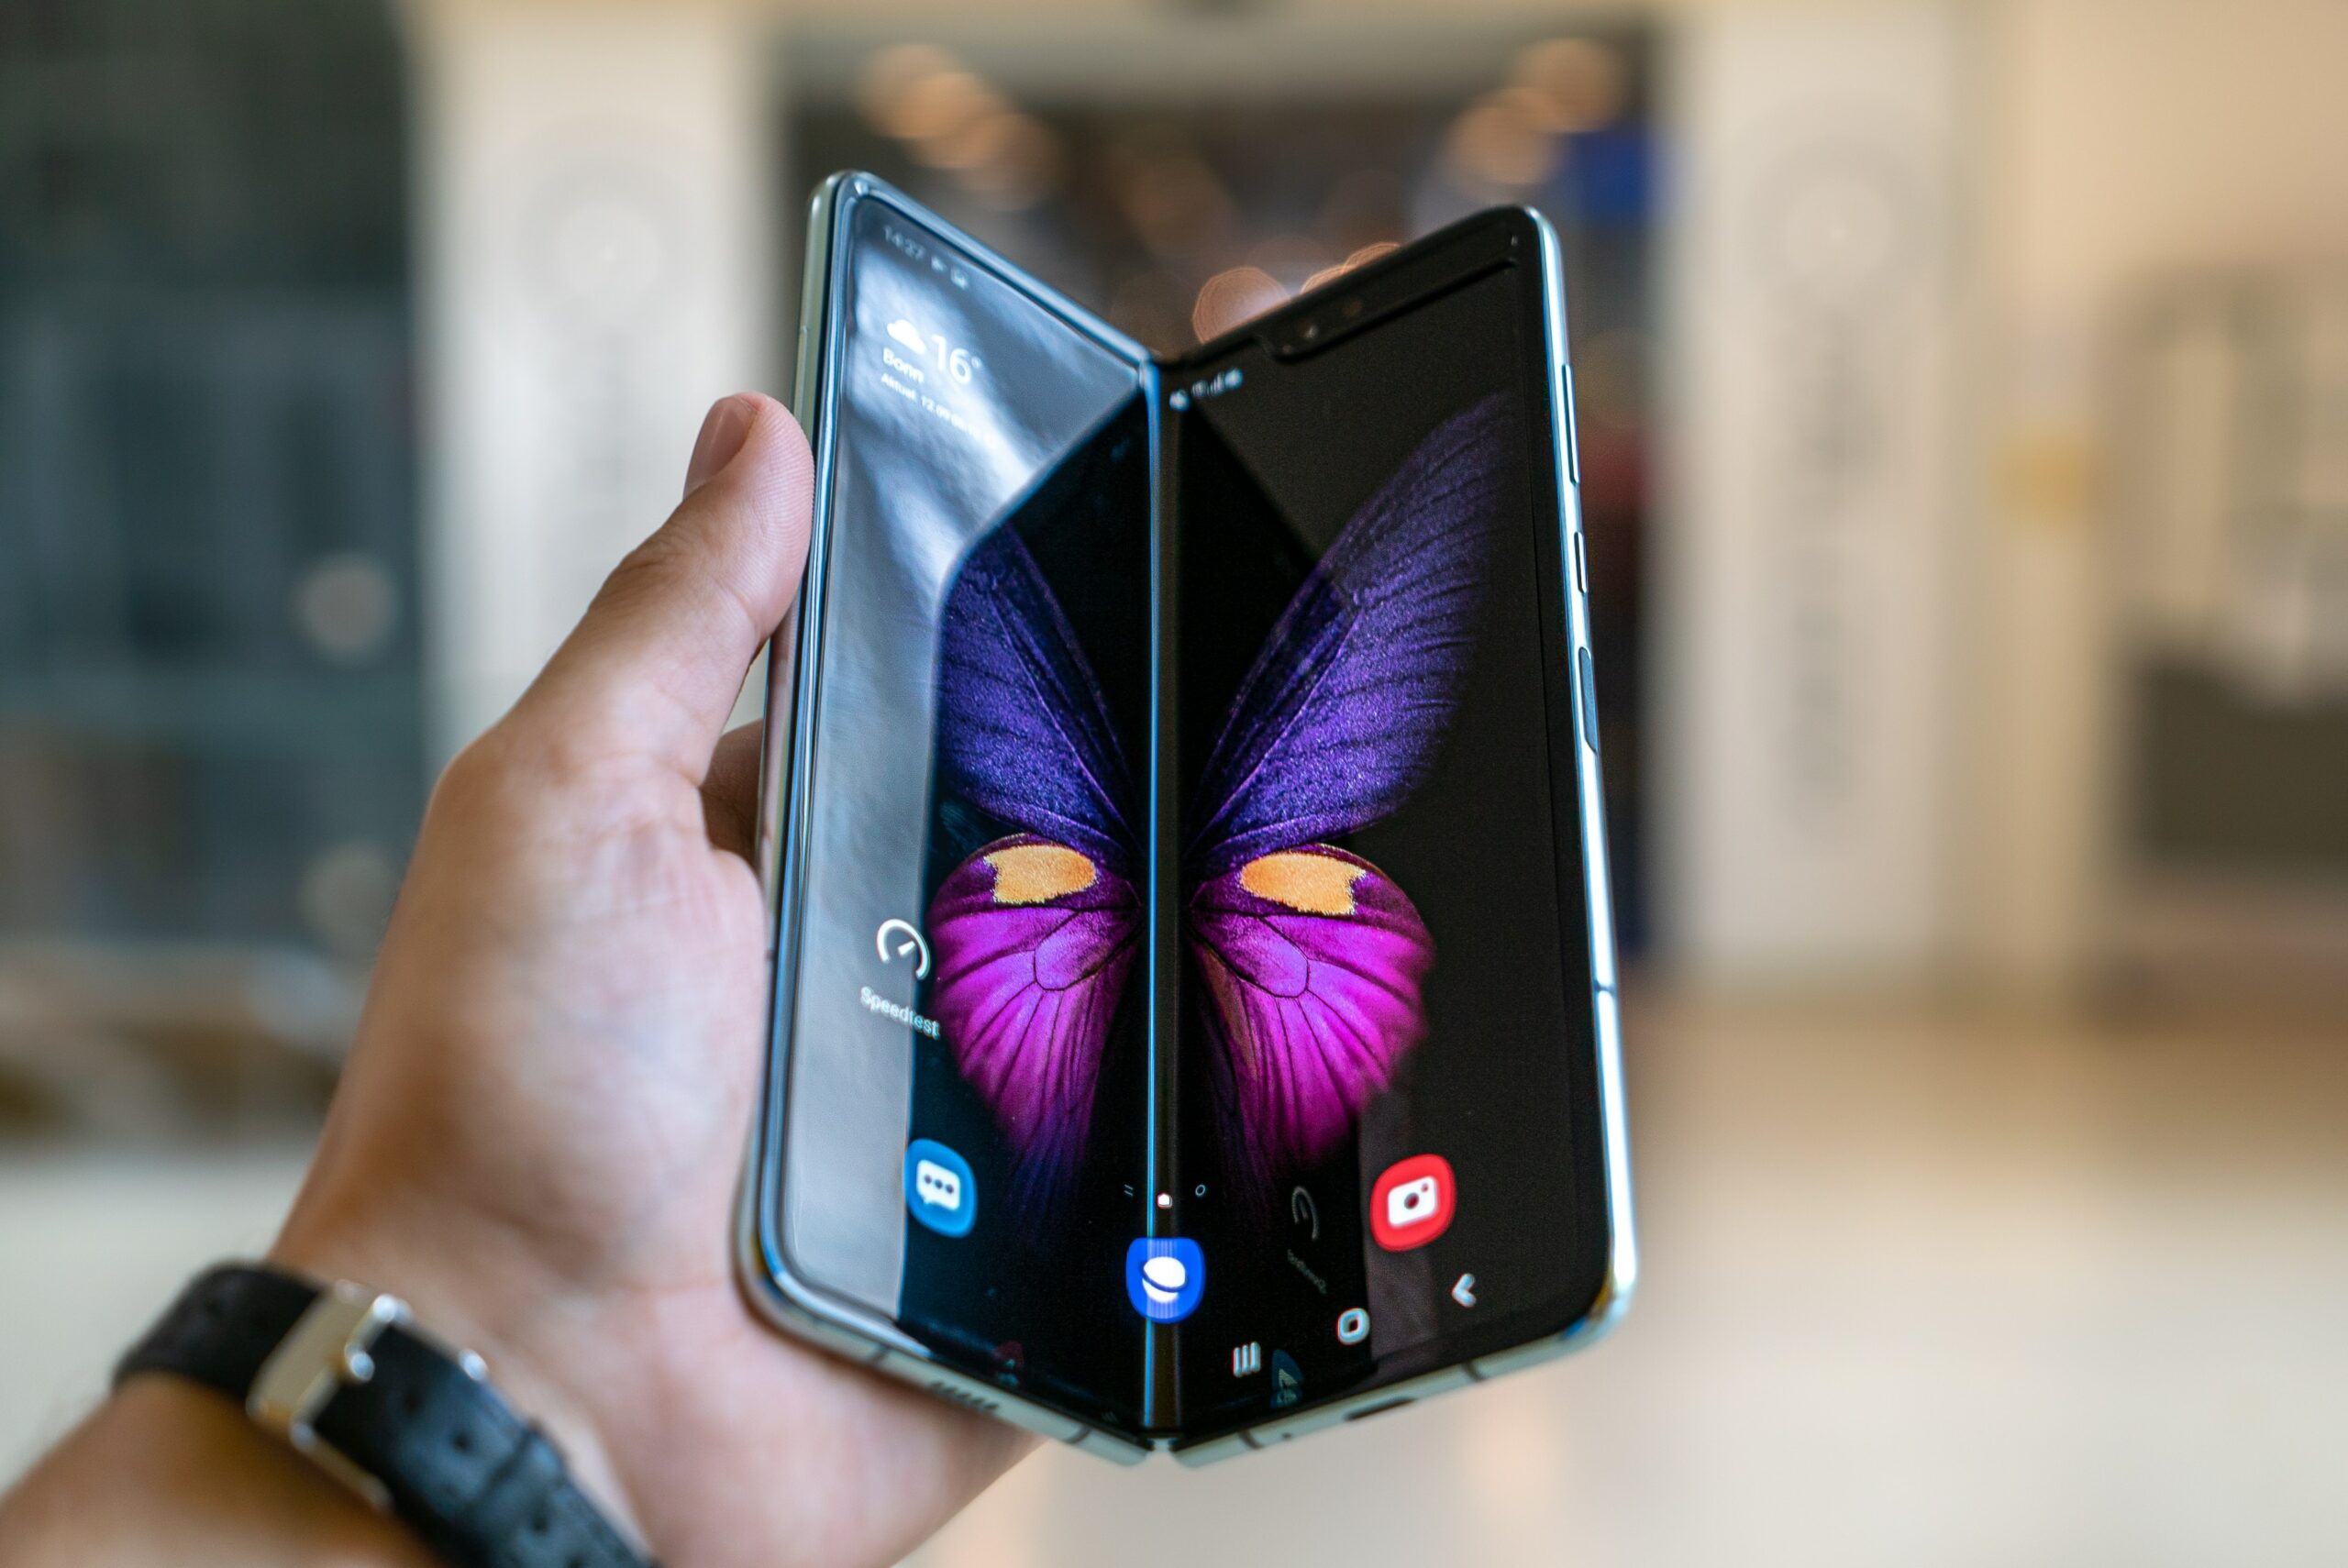 Galaxy Z Fold 2 Discontinued by Samsung as We Wait for the Z Fold 3